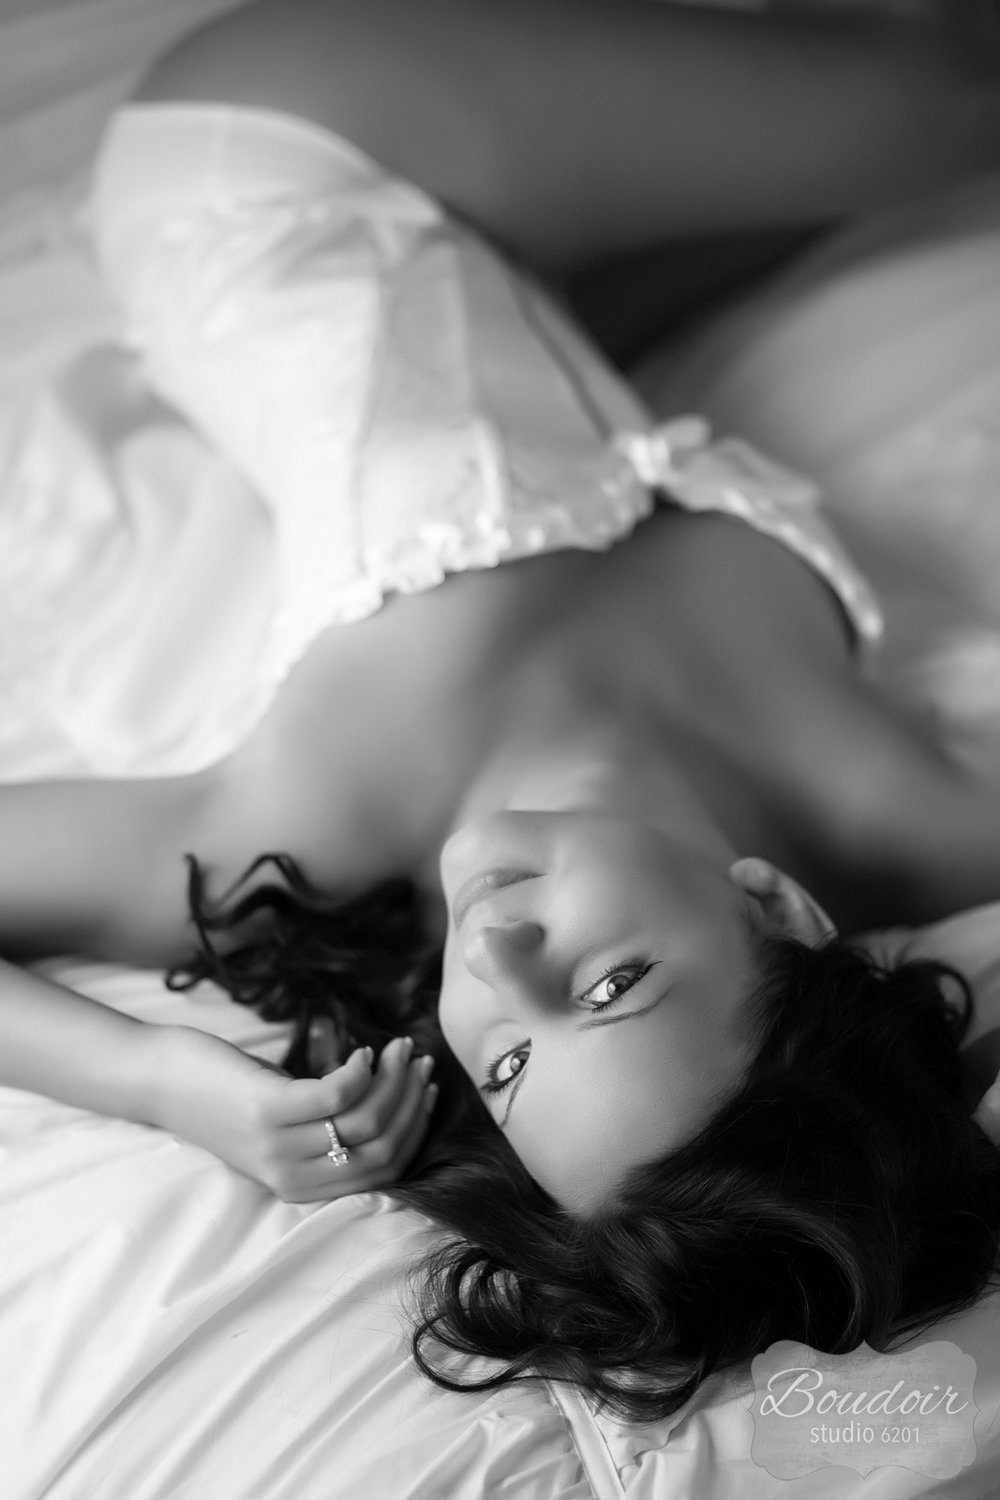 boudoir-studio-rochester-beautiful-gallery-053.jpg